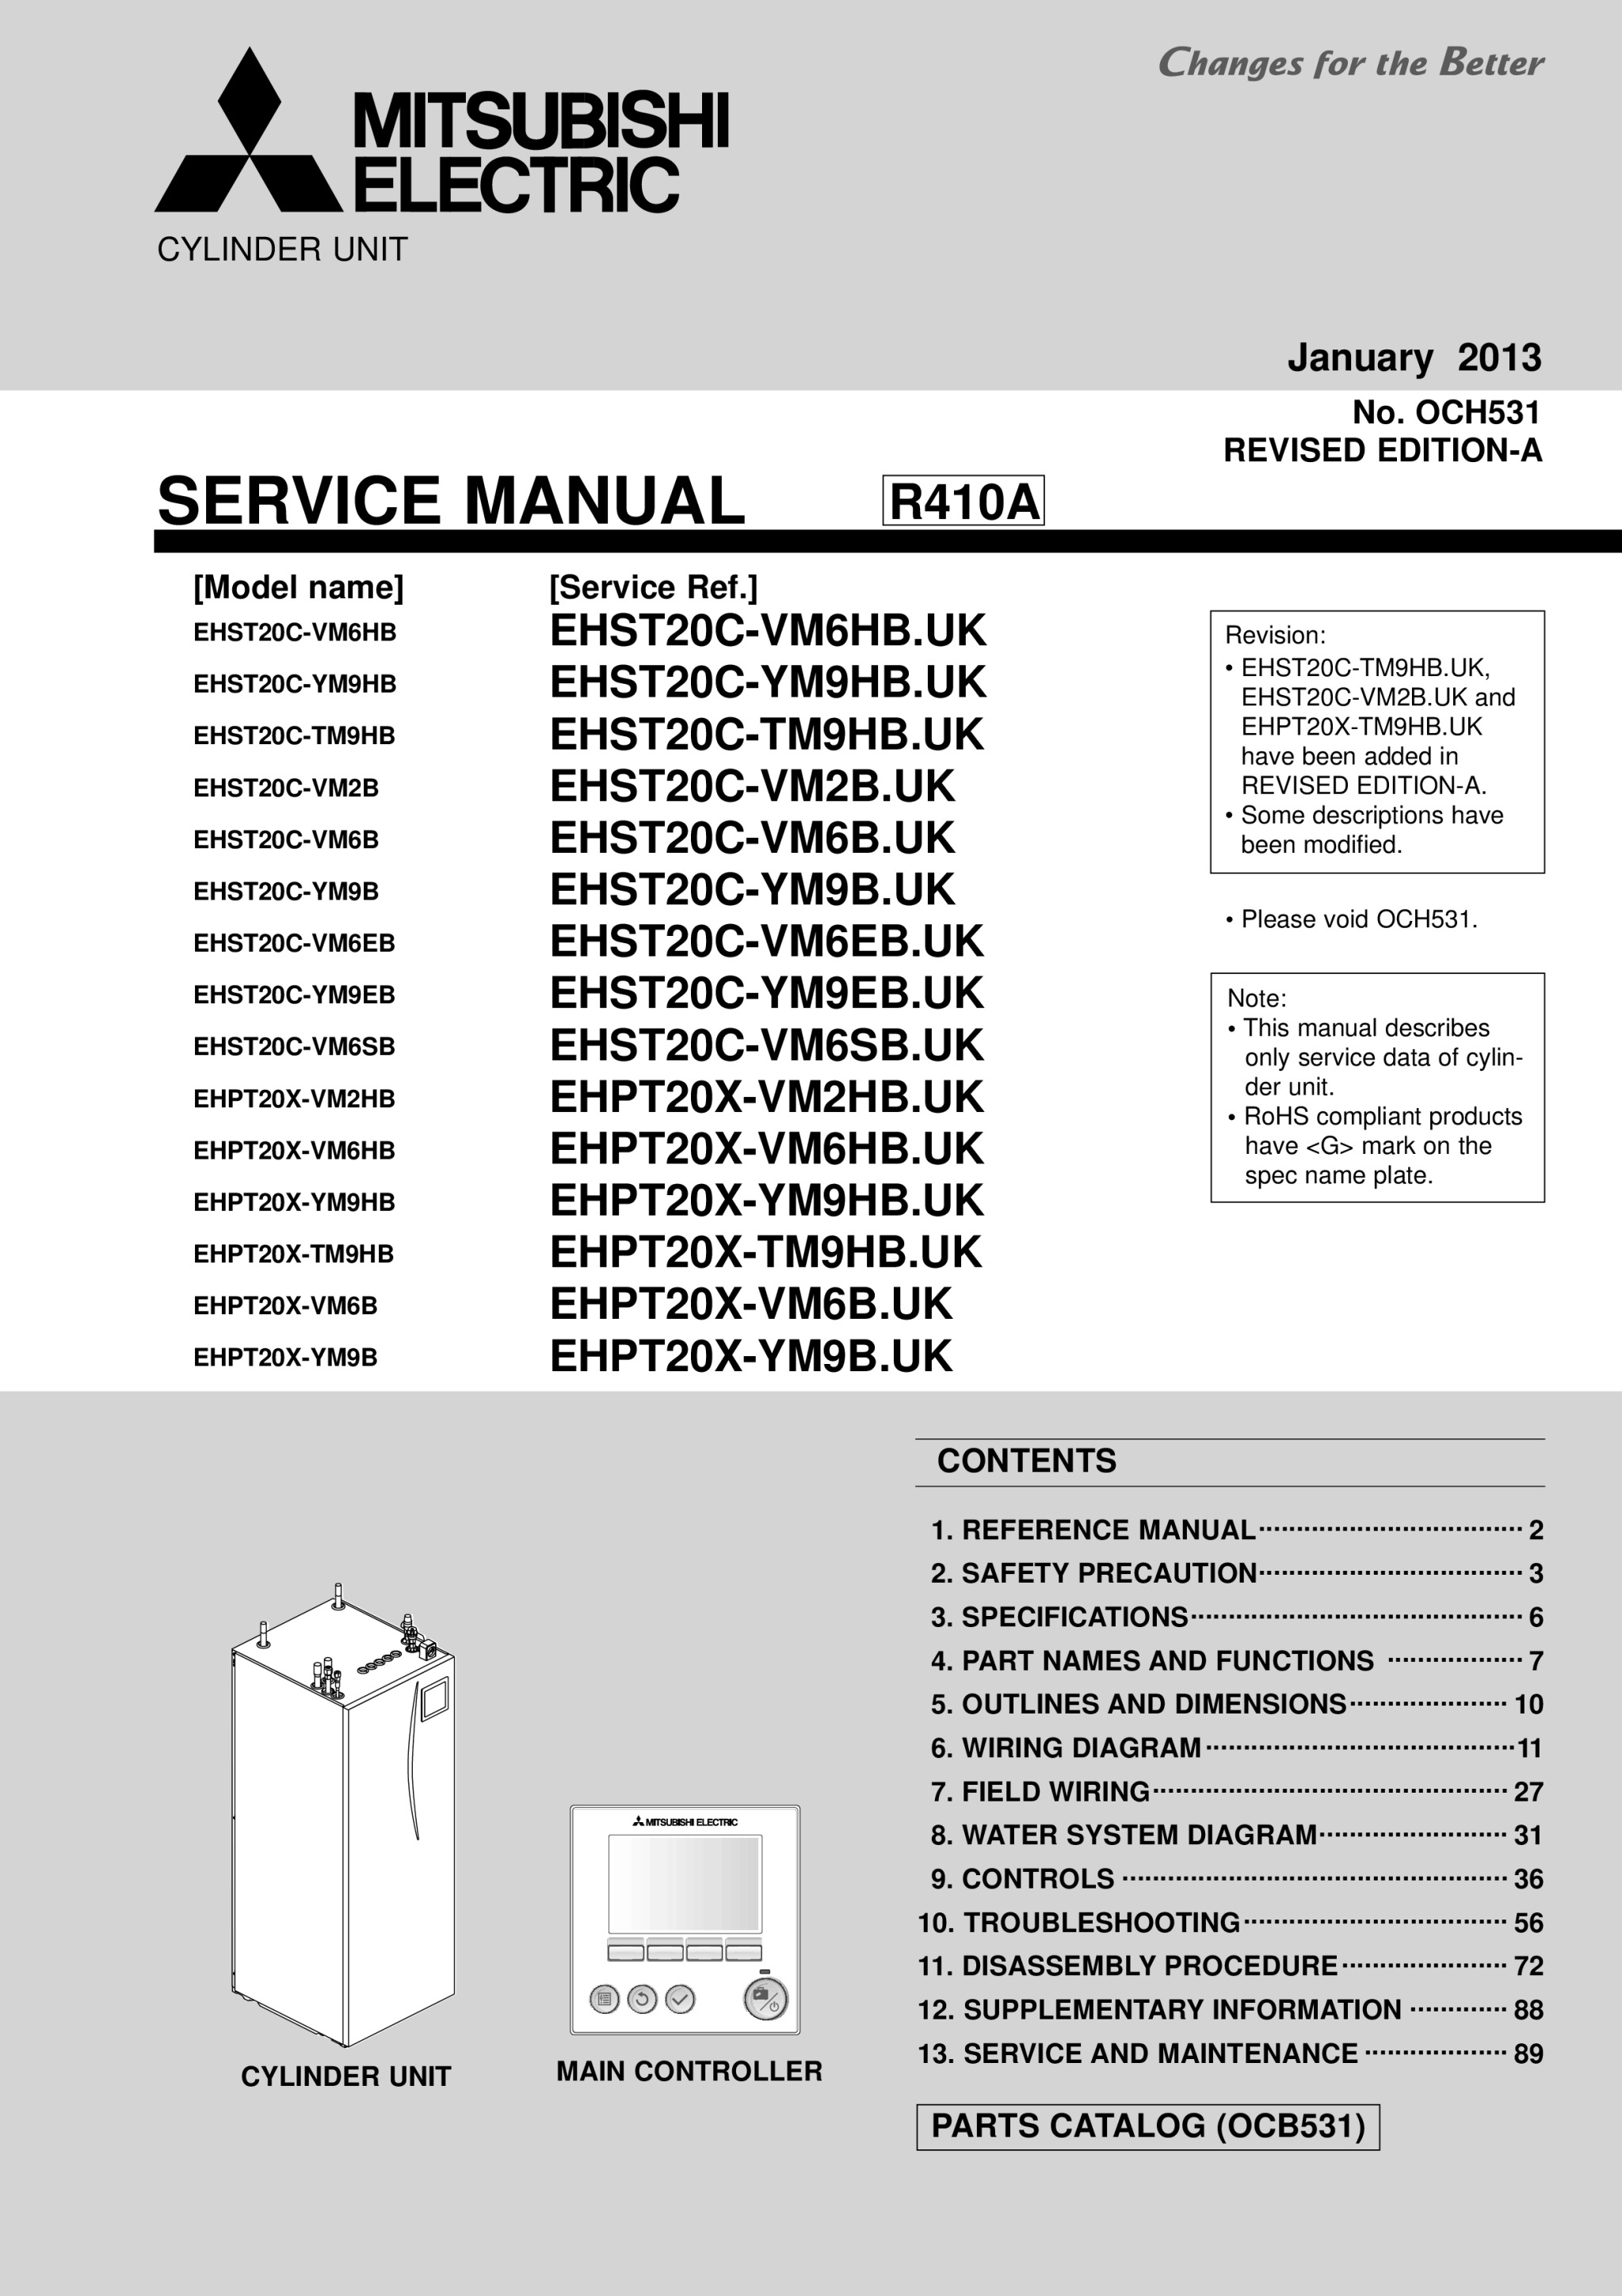 ecodan ehpt20x vm2hb service manual mitsubishi electric rh library mitsubishielectric co uk mitsubishi electric starmex service manual mitsubishi electric aircon service manual